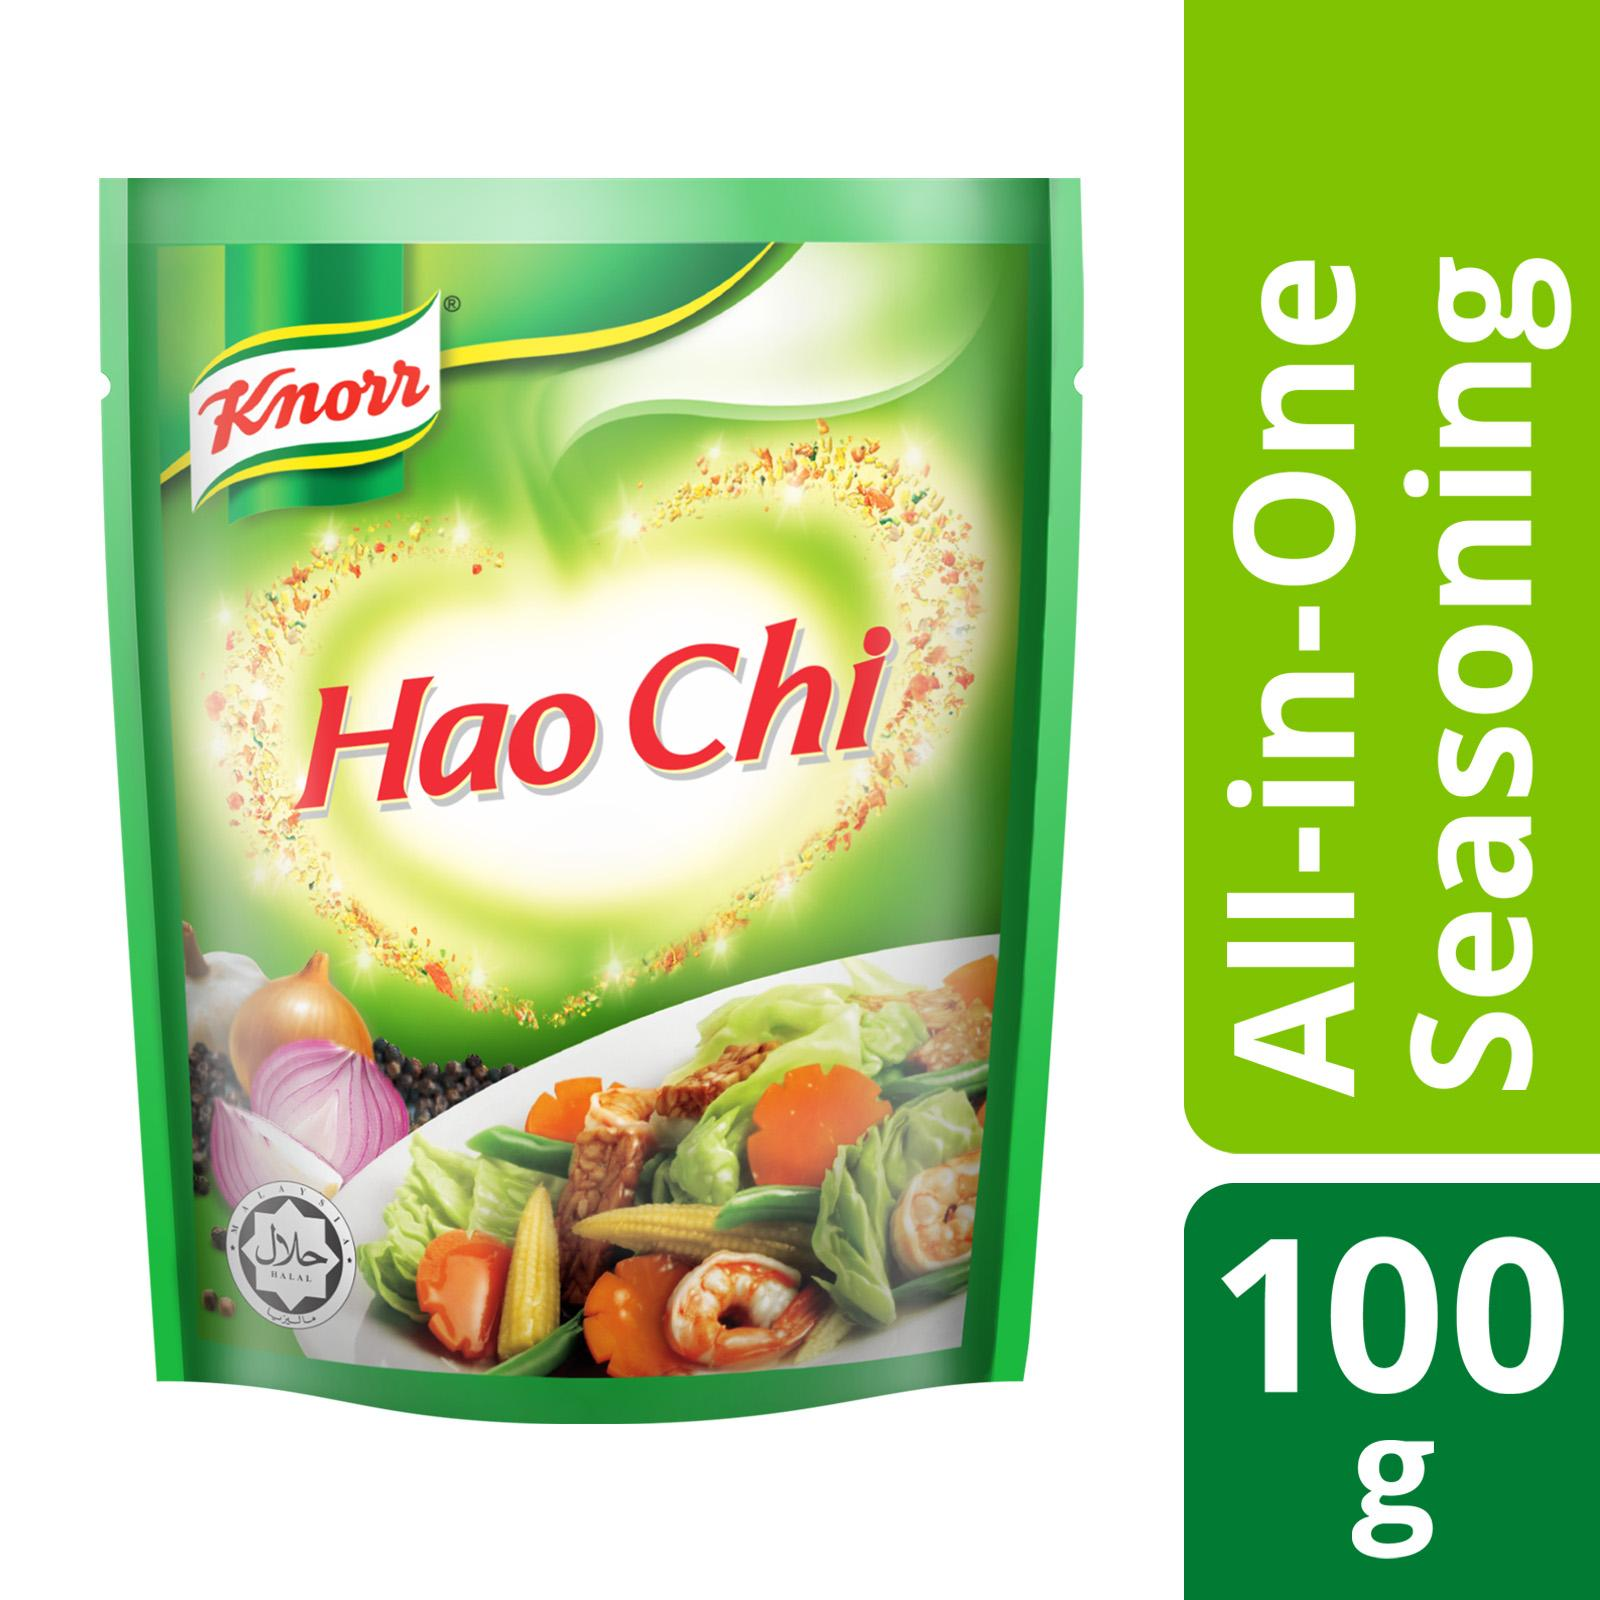 KNORR Hao Chi All-In-One Seasoning 100g